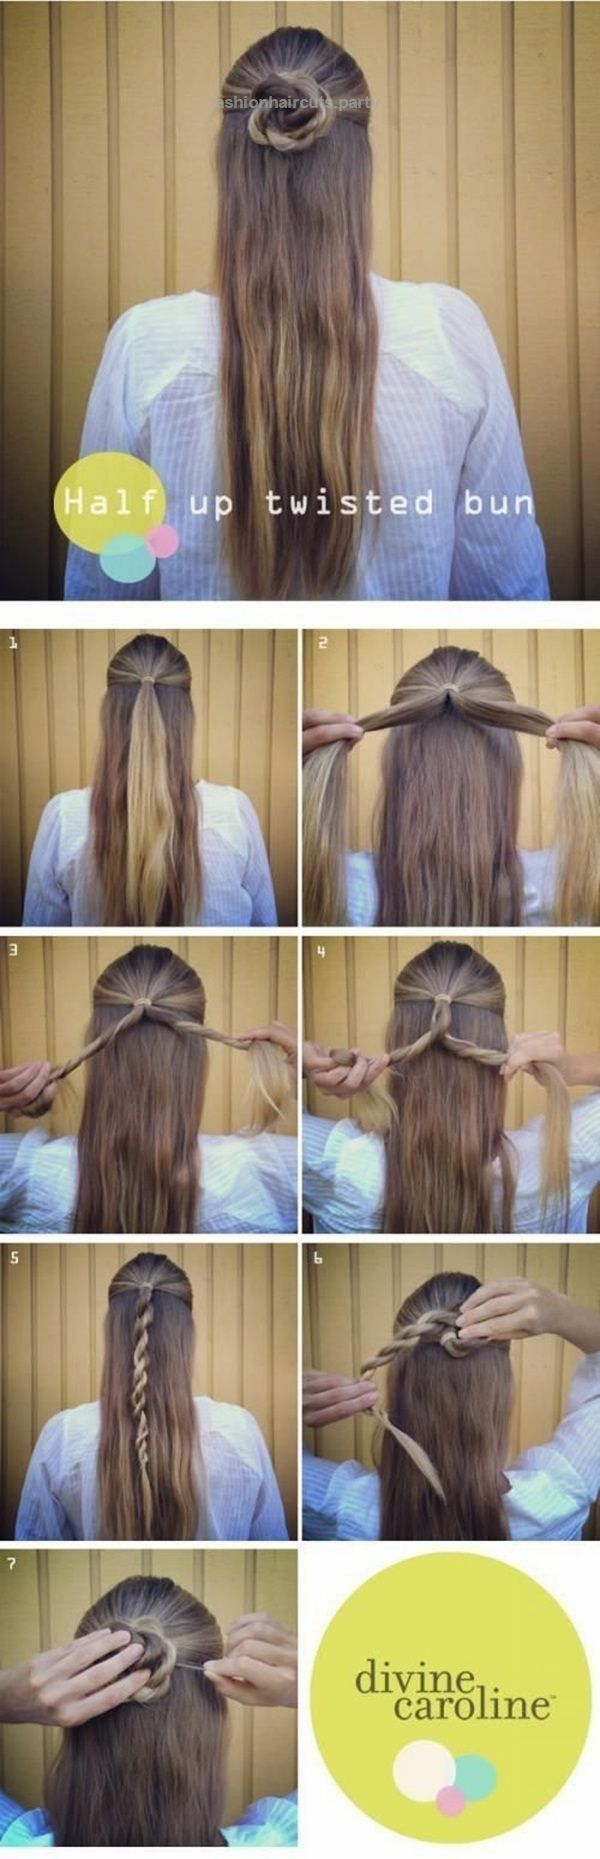 40 Easy Hairstyles for Schools to Try in 2017. Quick, Easy, Cute  and Simple Ste… 40 Easy Hairstyles for Schools to Try in 2017. Quick, Easy, Cute  and Simple Step By Step Girls and Teens Hairstyles for Back to School.  Great Fo ..  http://www.fashionhaircuts.party/2017/05/15/40-easy-hairstyles-for-schools-to-try-in-2017-quick-easy-cute-and-simple-ste-2/